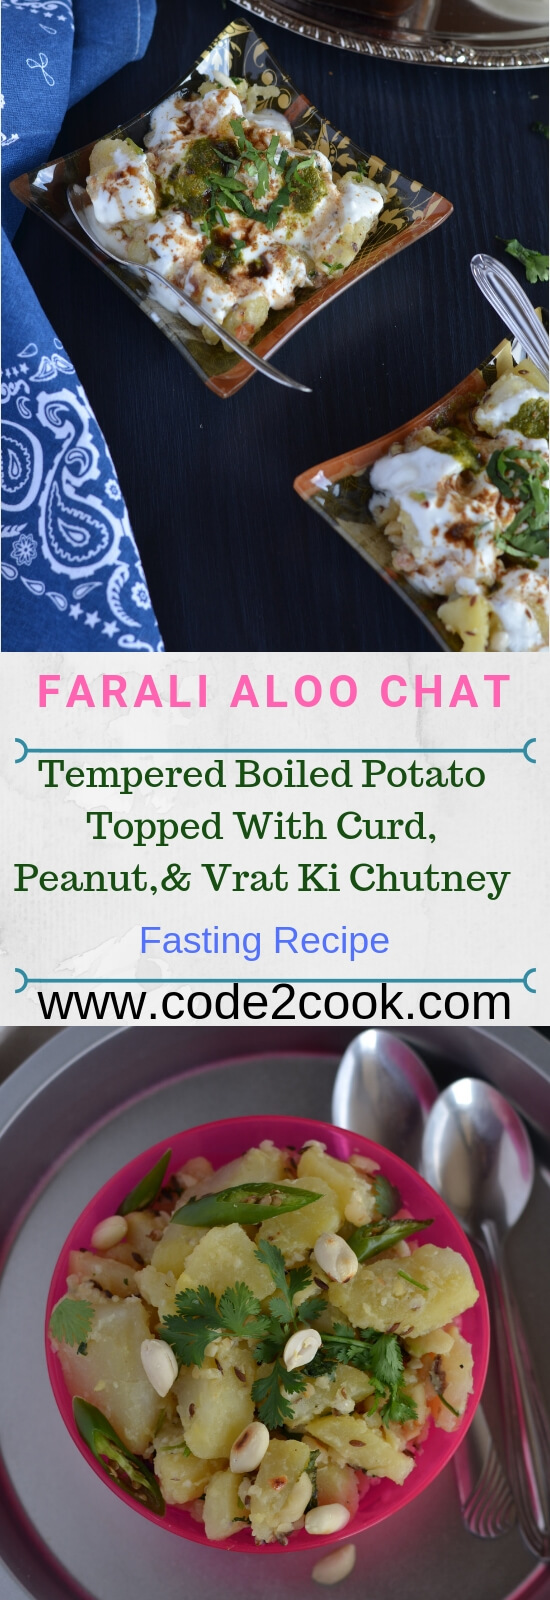 Vrat ke aloo or vrat wale aloo are prepared very often during fasting/vrat, especially in Navratri fasting days. This is a no onion no garlic recipe yet lip-smacking food. This vrat wale aloo or vrat ke jeera aloo can be served on other fasts as well like Ekadashi, Mahashivratri, Janmashtami.